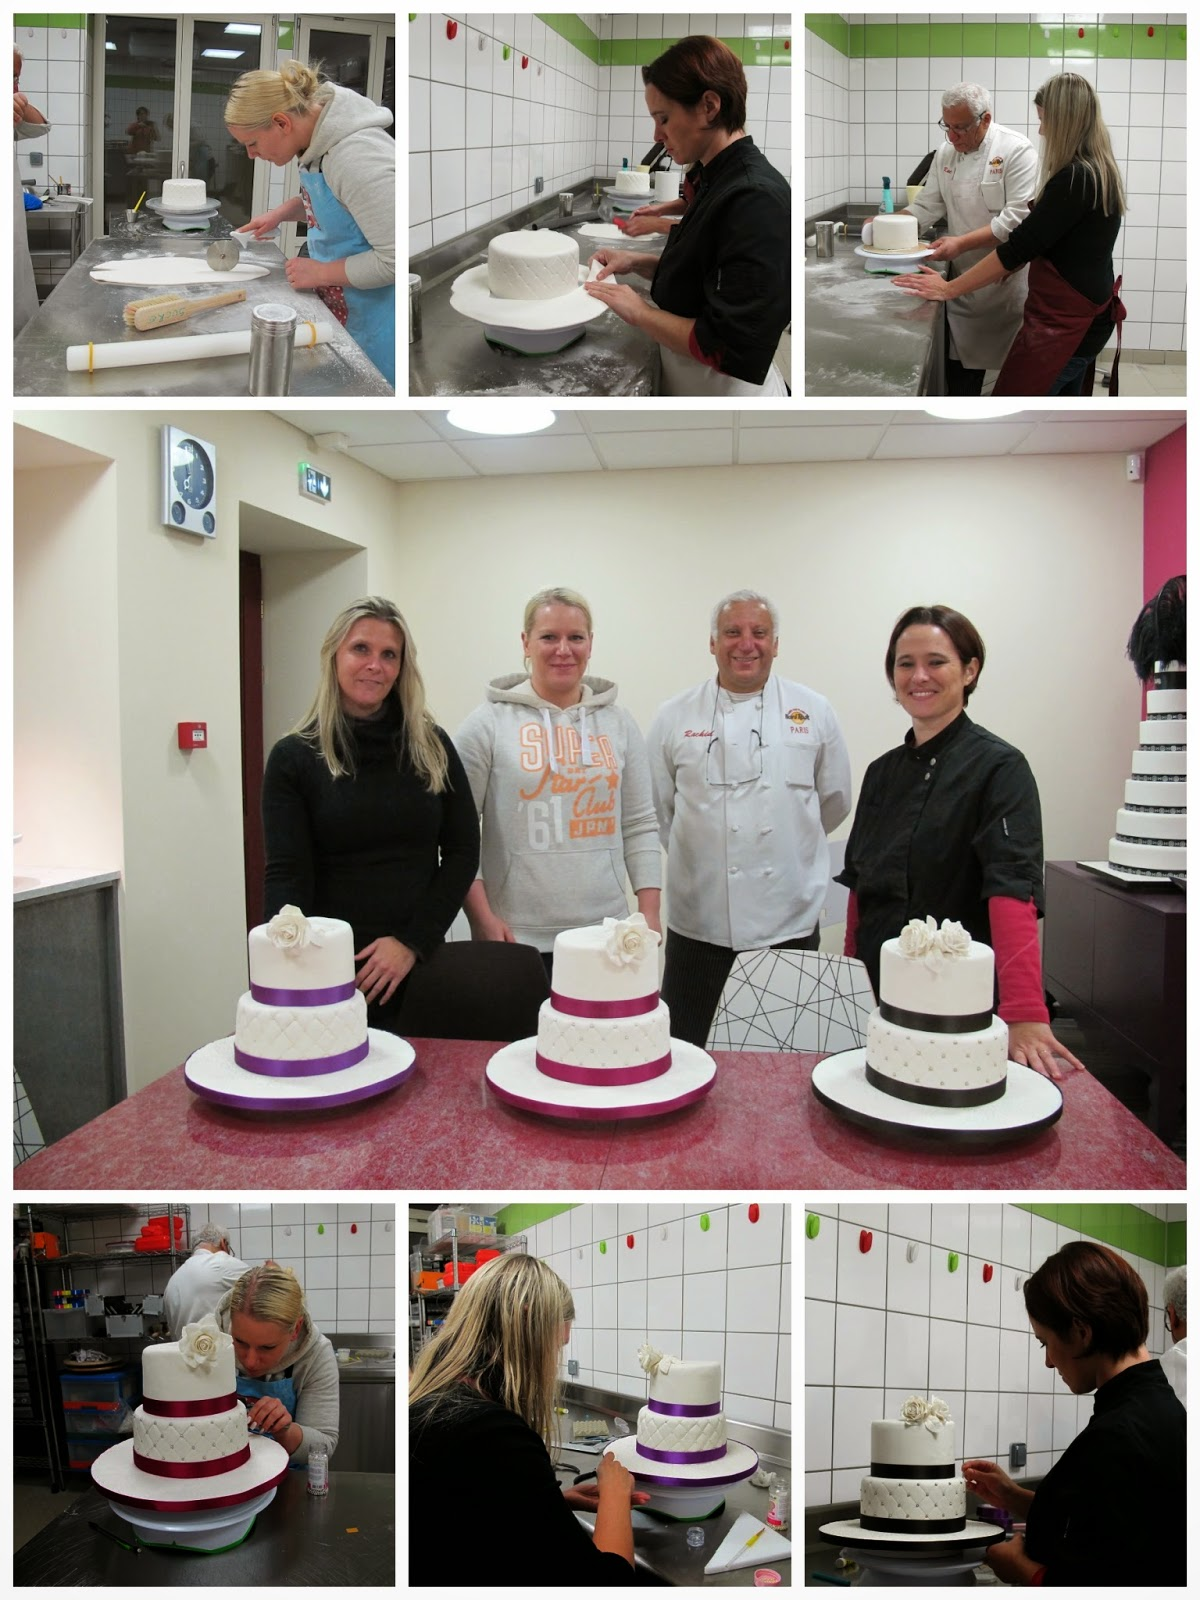 Crazy cake cake design thionville metz luxembourg for Stage cuisine lorraine